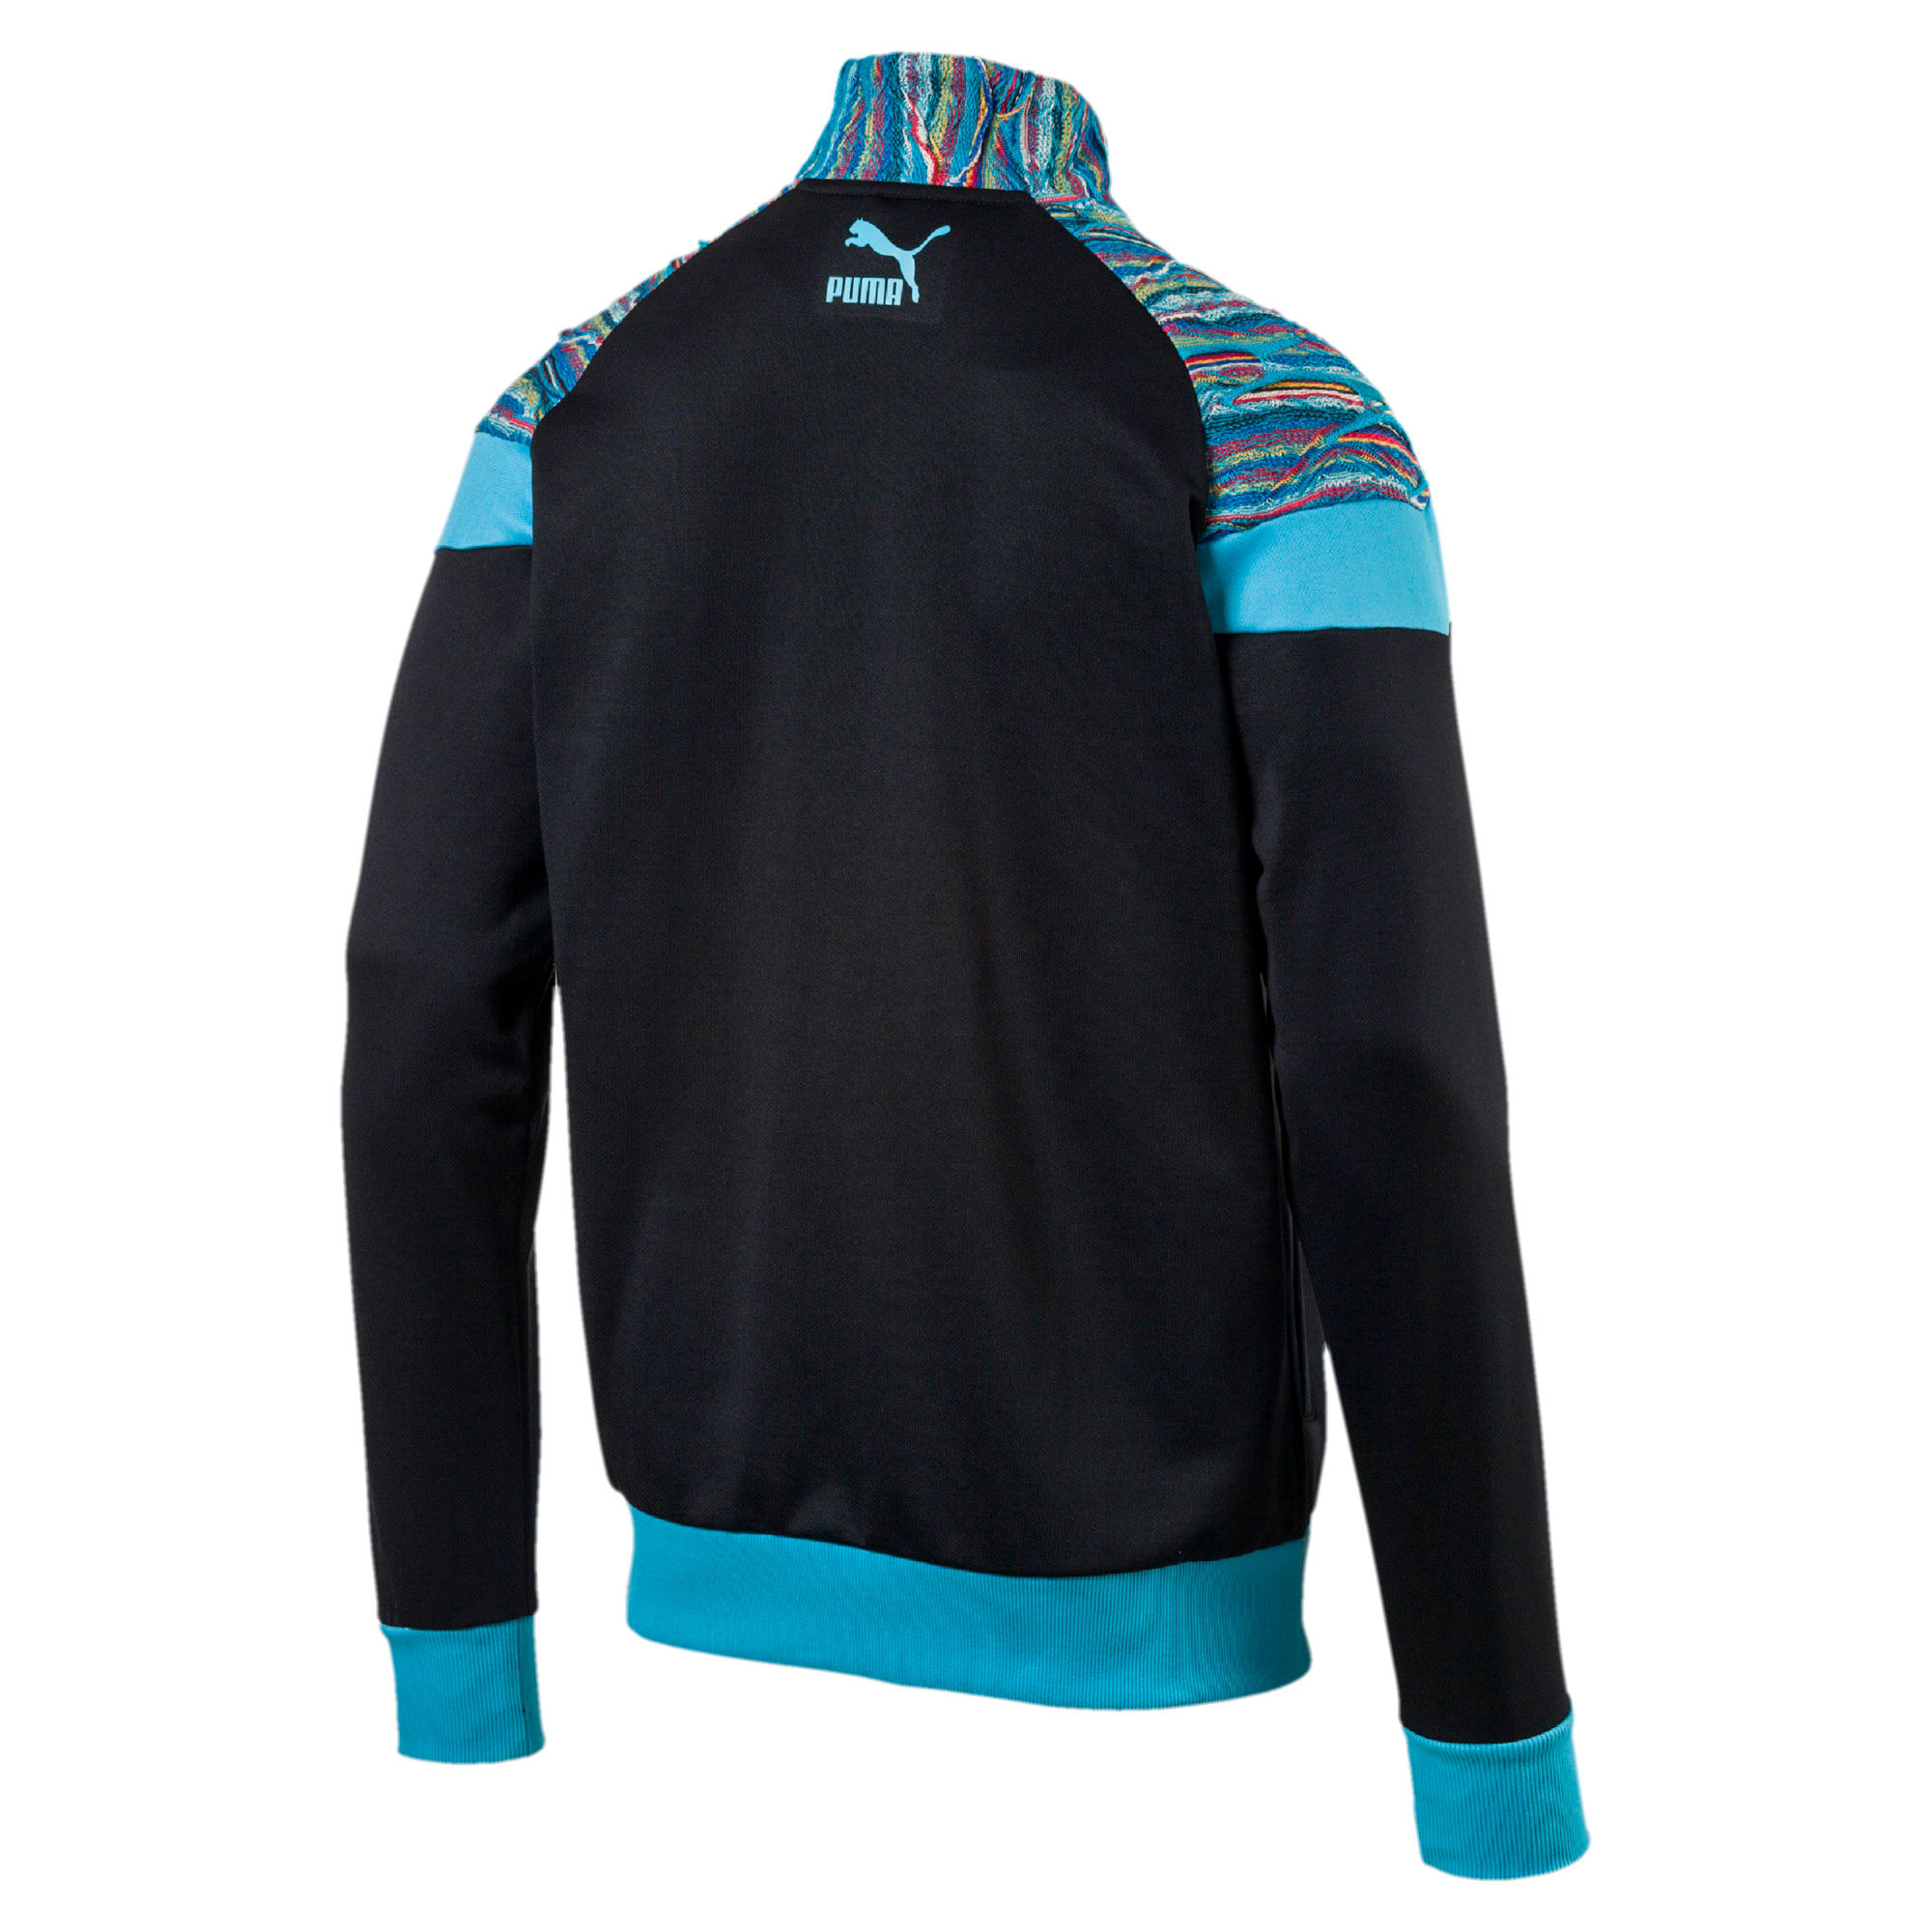 Thumbnail 2 of PUMA x COOGI Men's Track Jacket, Puma Black-Blue Atoll, medium